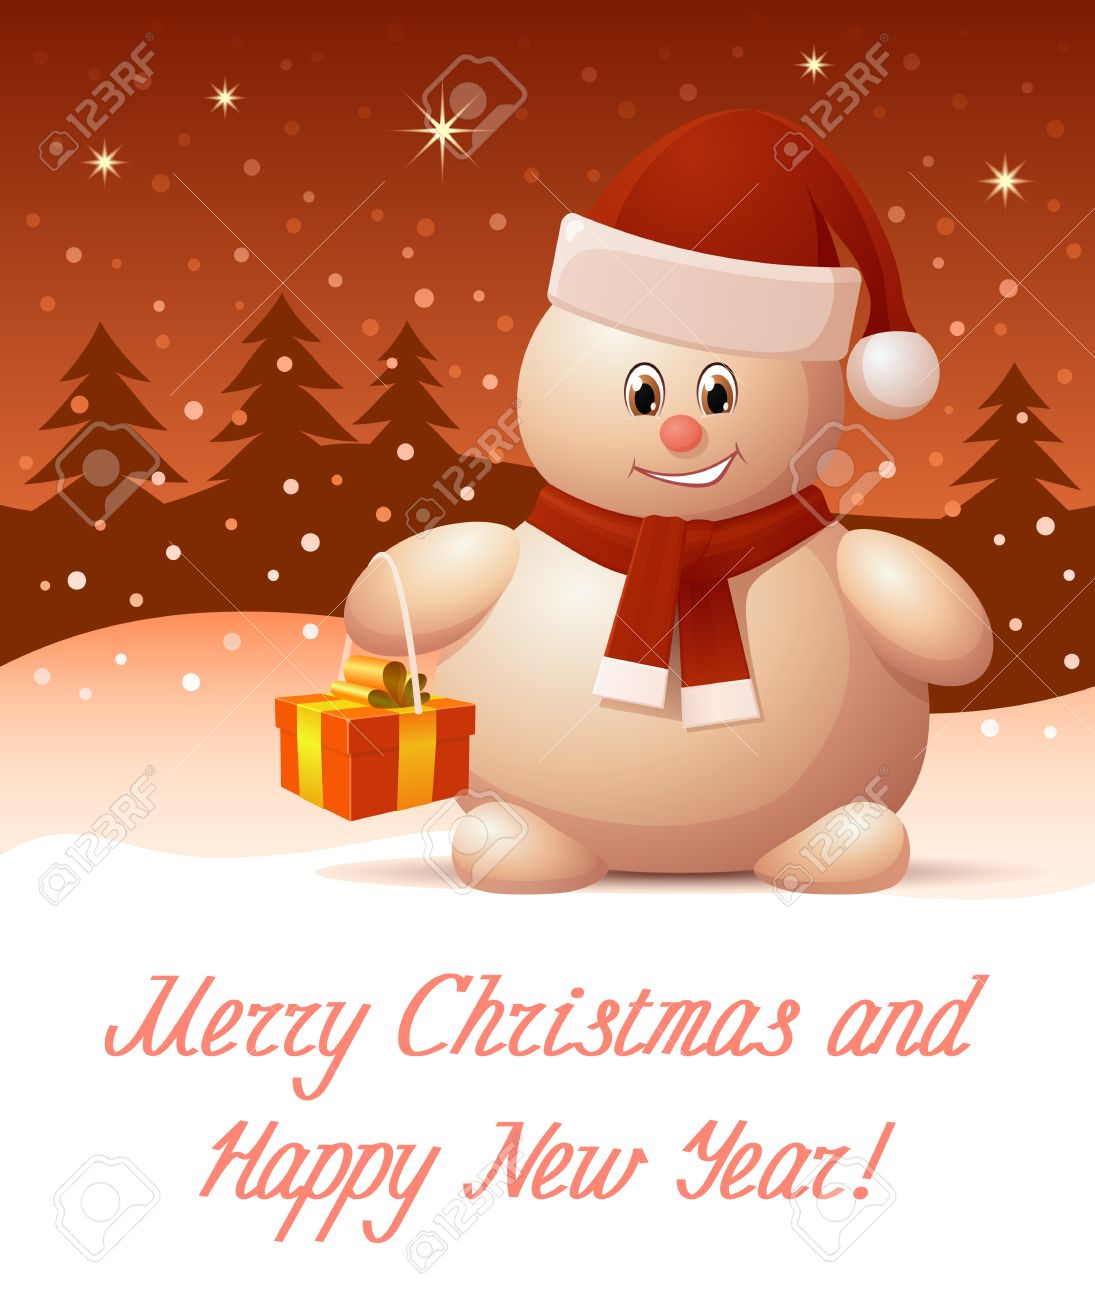 Merry Christmas And Happy New Year Greeting Card Royalty Free.  Merry Christmas...